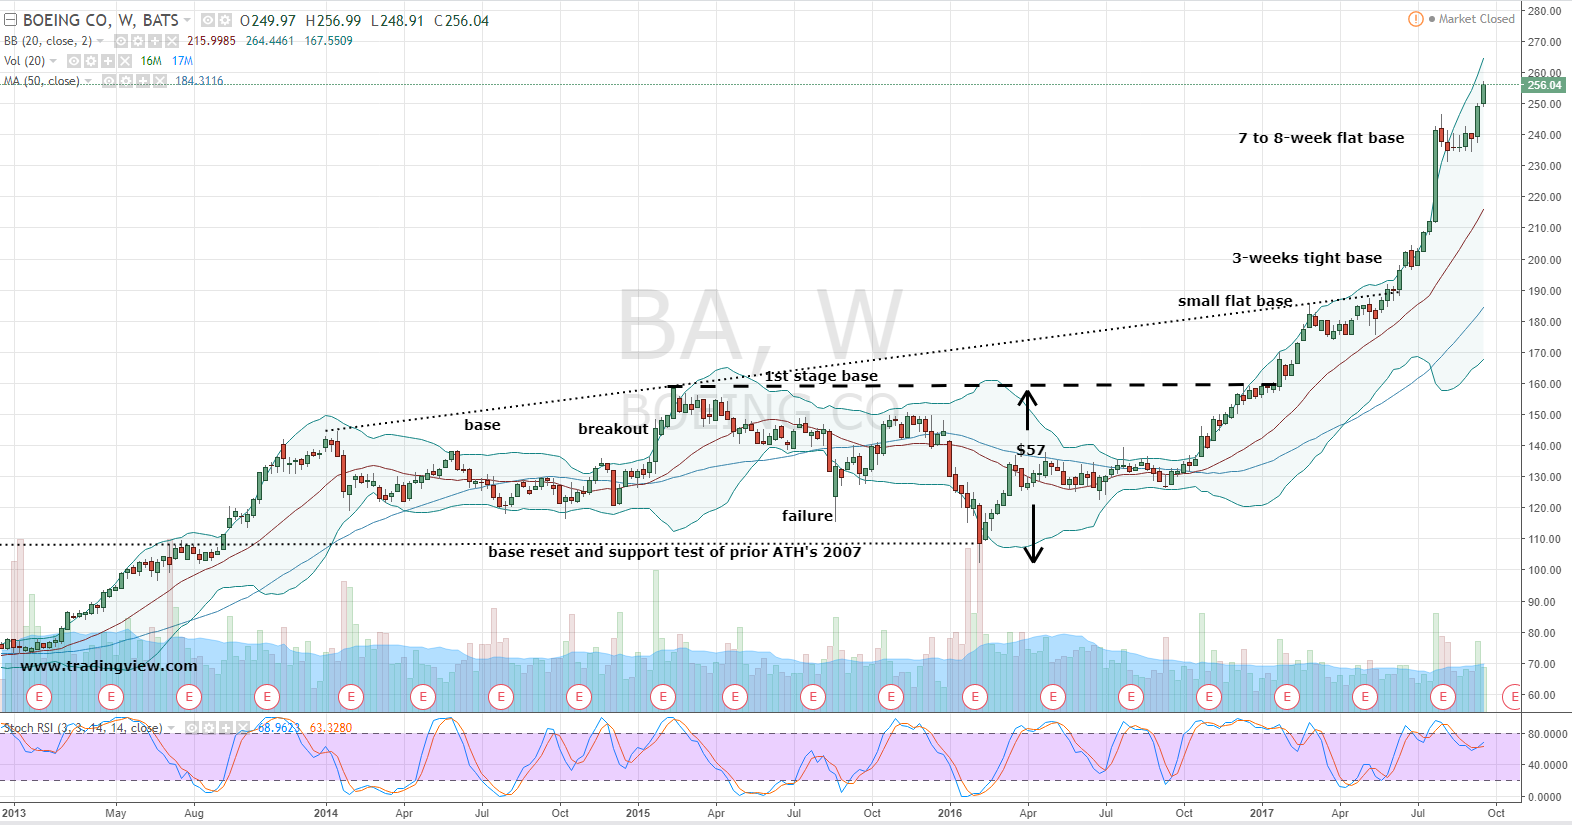 Boeing Corporation (BA) Stock Can Fly You to an Easy 240 ...